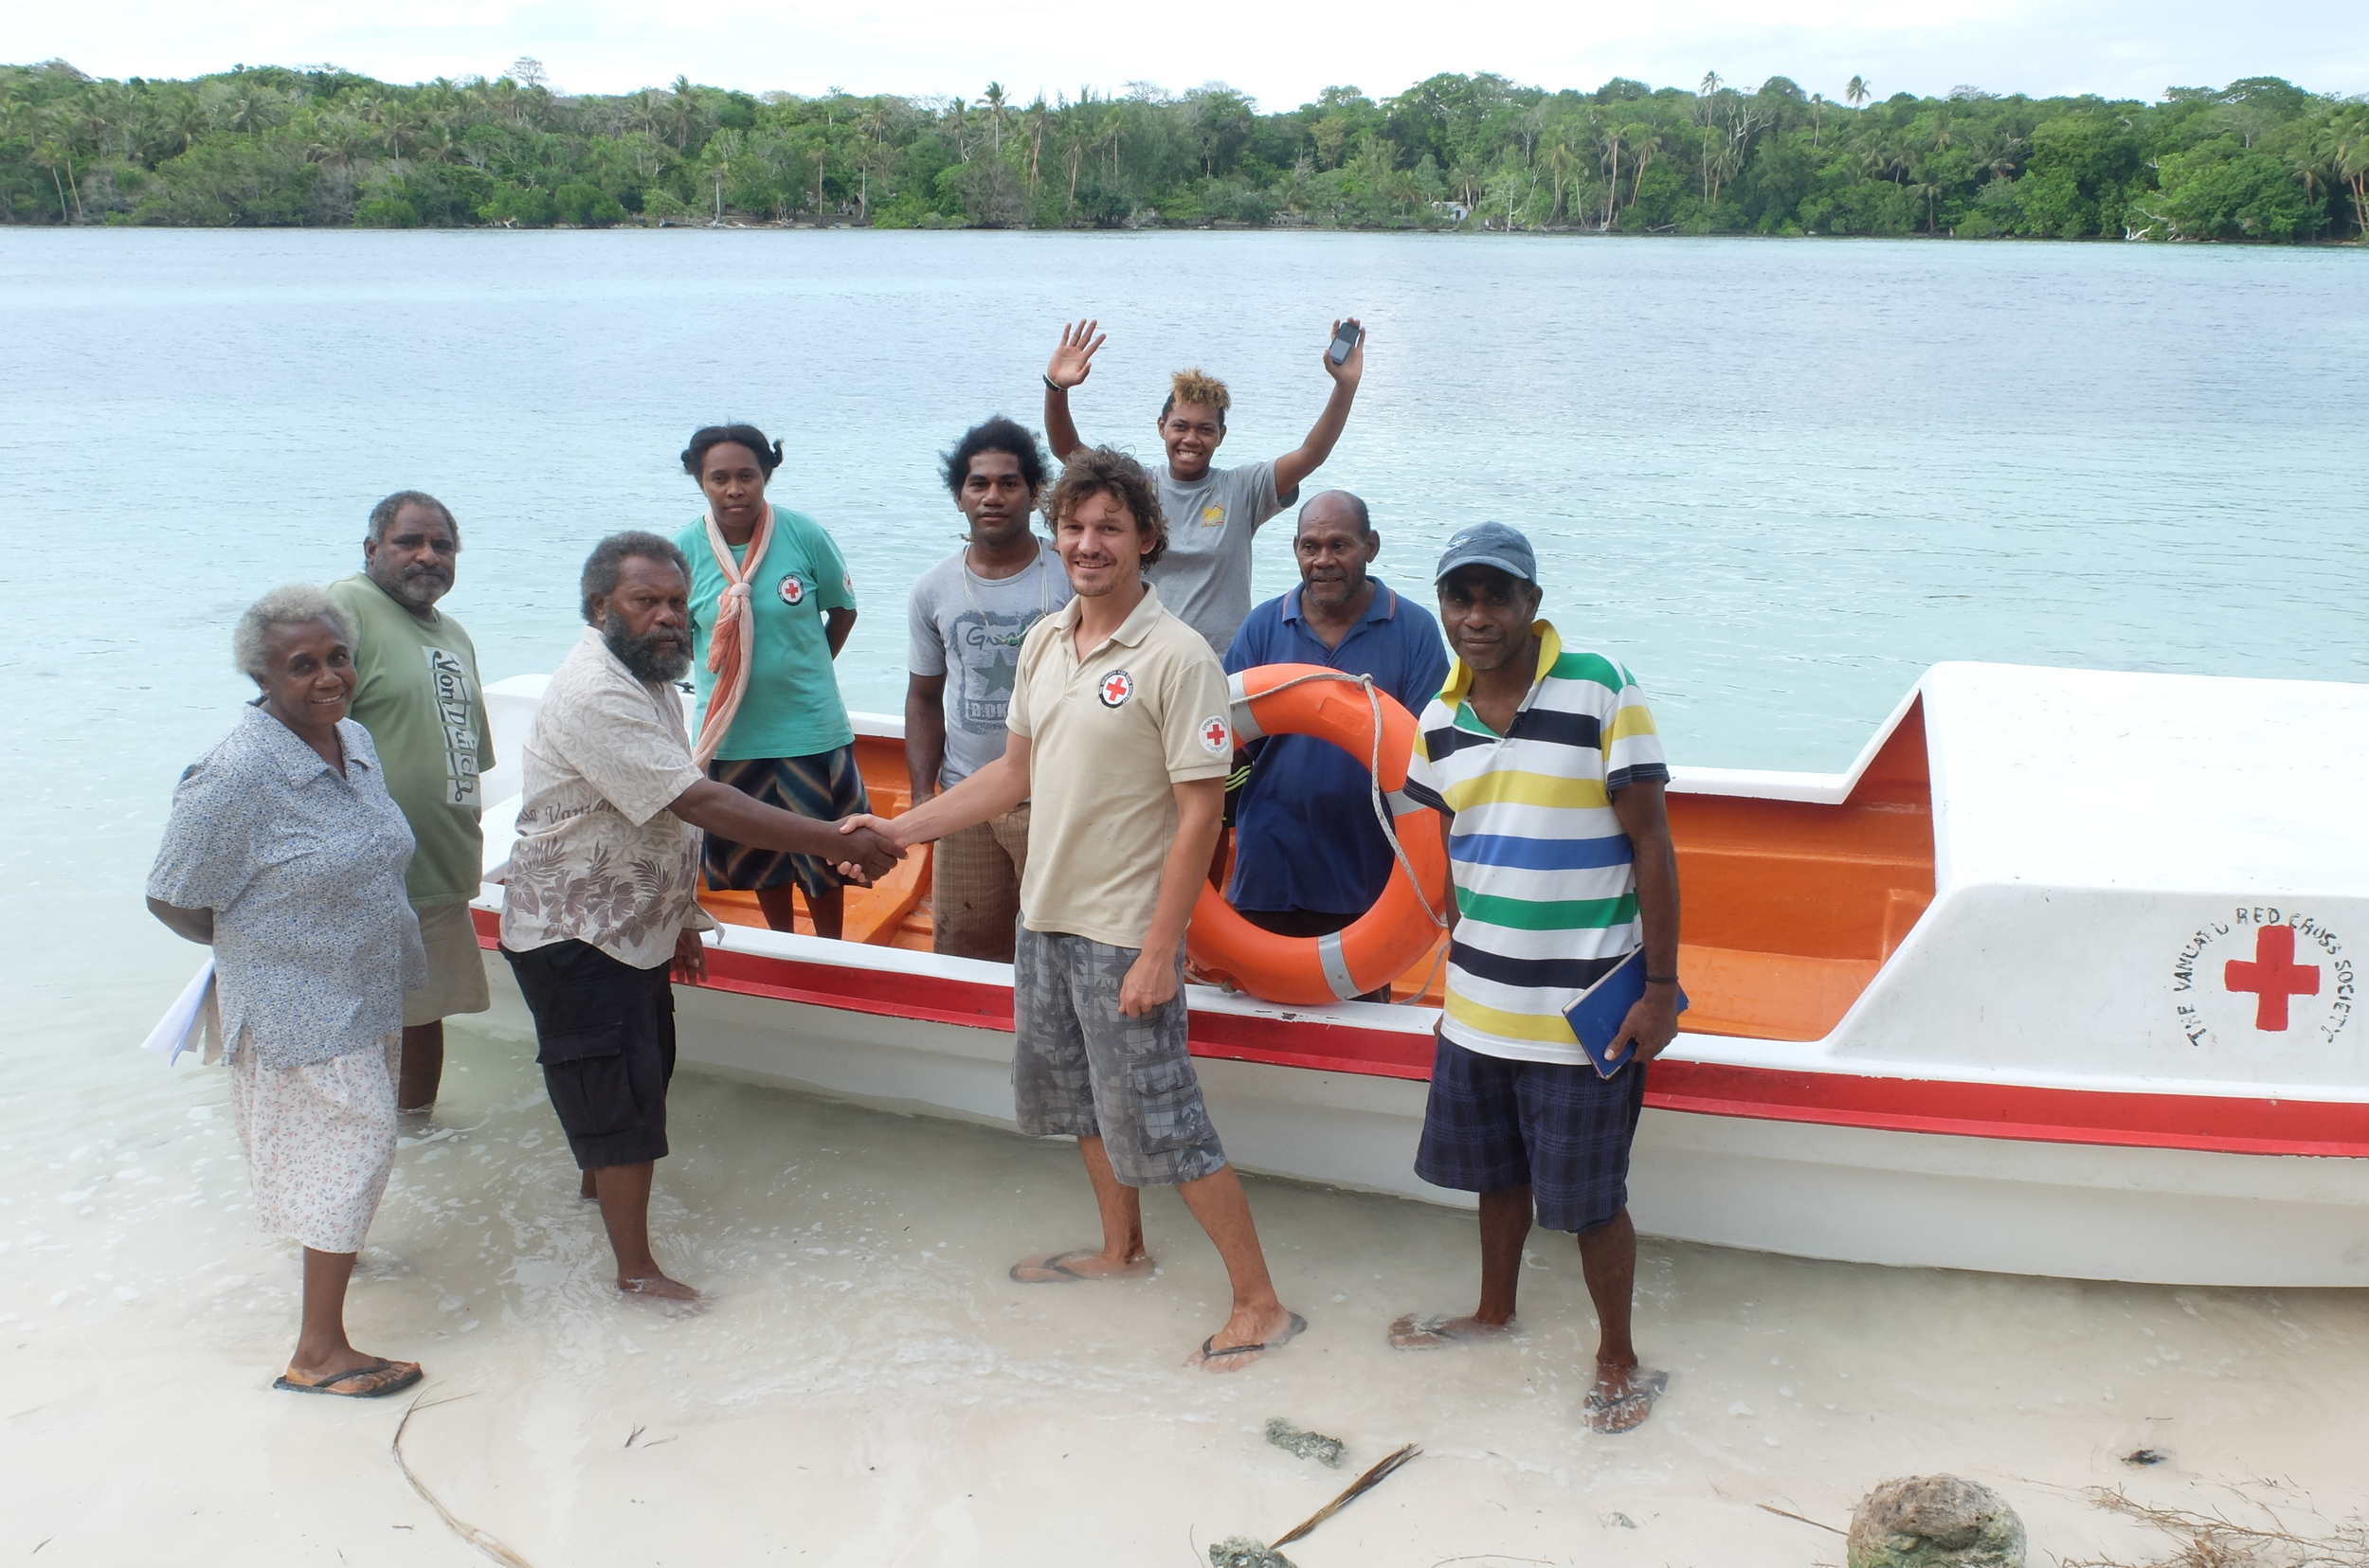 Normal   0           false   false   false     EN-AU   X-NONE   X-NONE                                                                                                                                                                                                                                                                                                                                                                             Boat Donation to Loh Health Centre (Torres Islands, Torba Province) with representatives of the Health Center and of the Red Cross